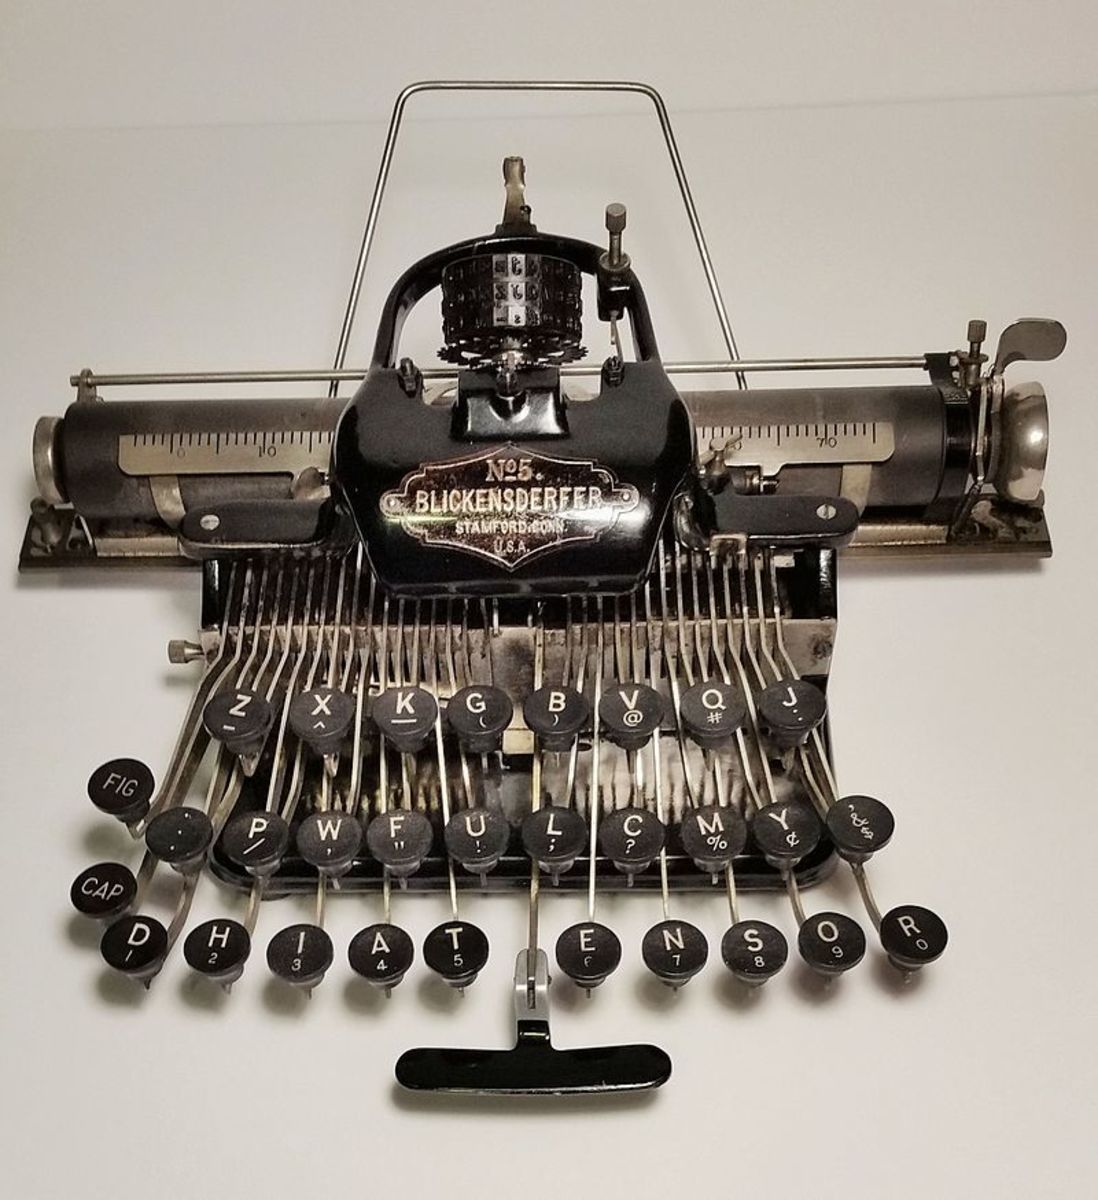 The Blickensdorfer typewriter of 1902 vintage was initially very popular because it was simpler and cheaper than competing machines.